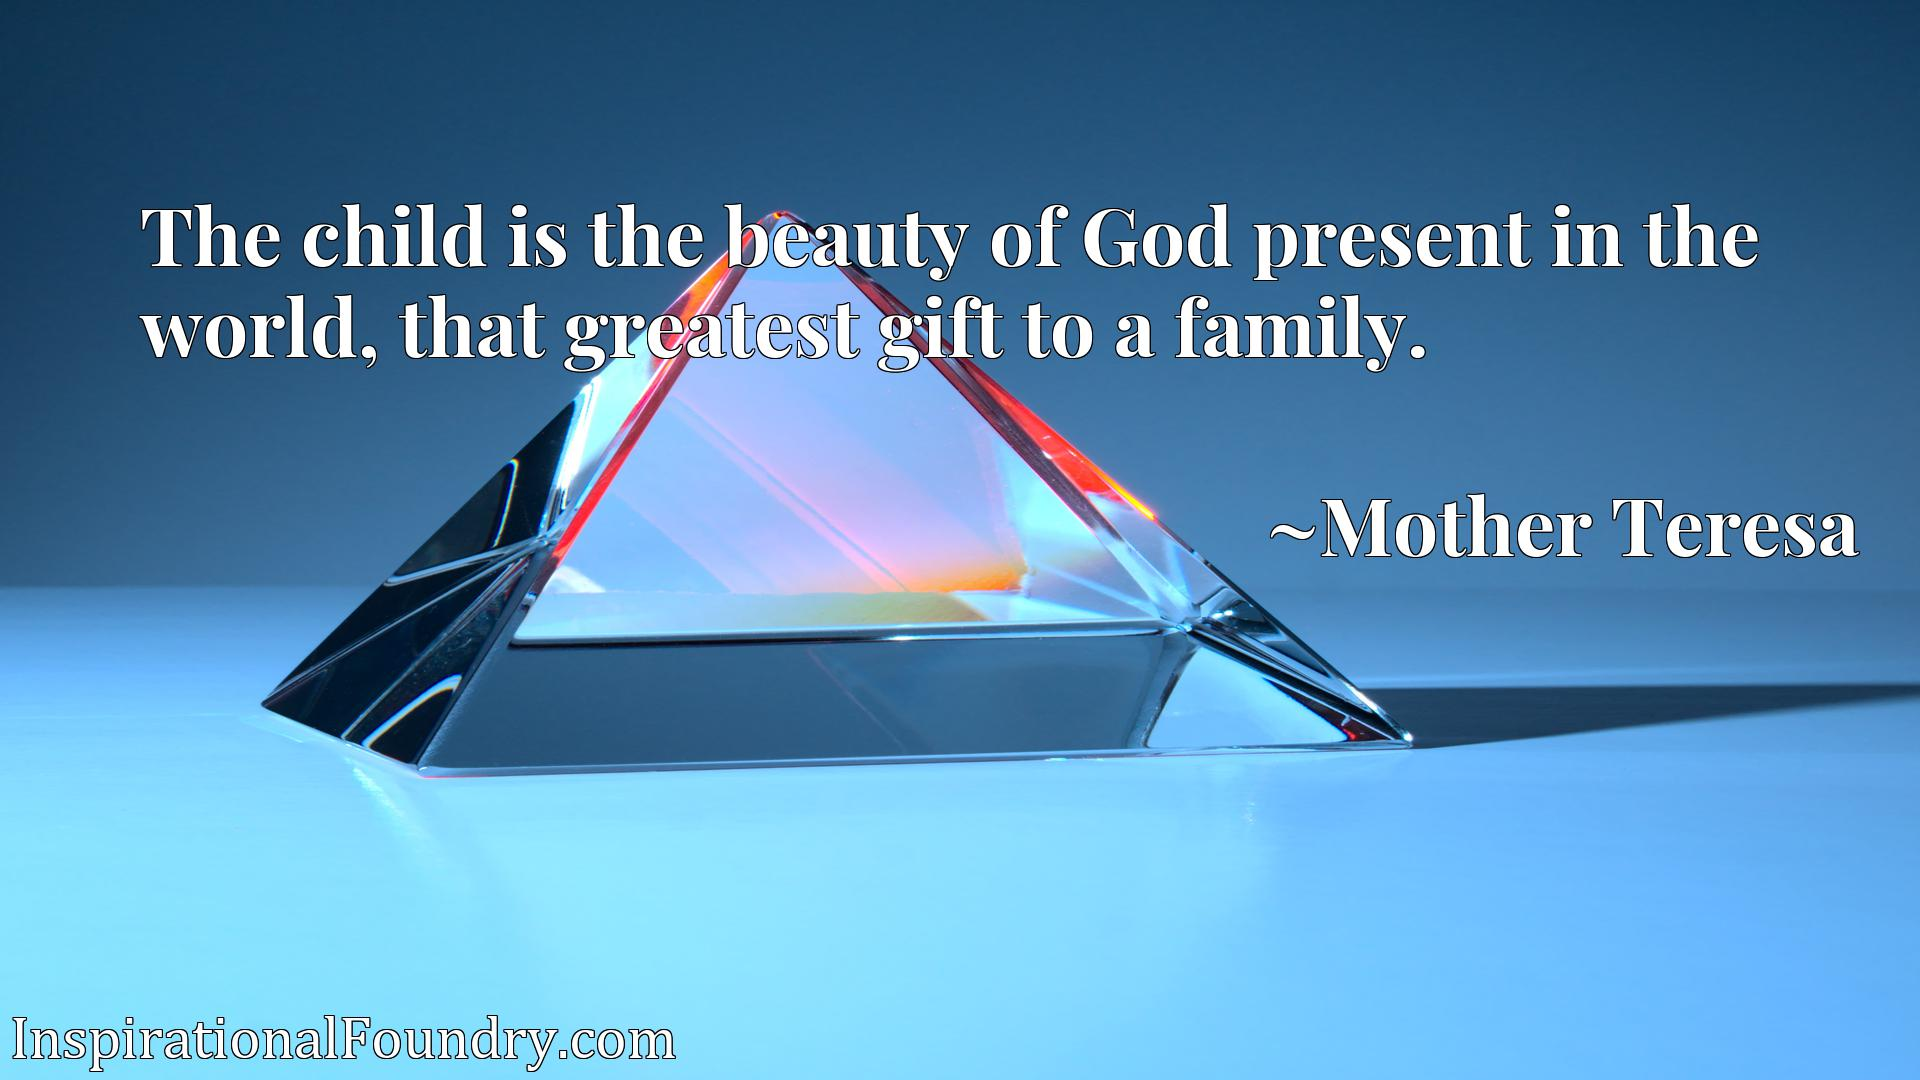 Quote Picture :The child is the beauty of God present in the world, that greatest gift to a family.